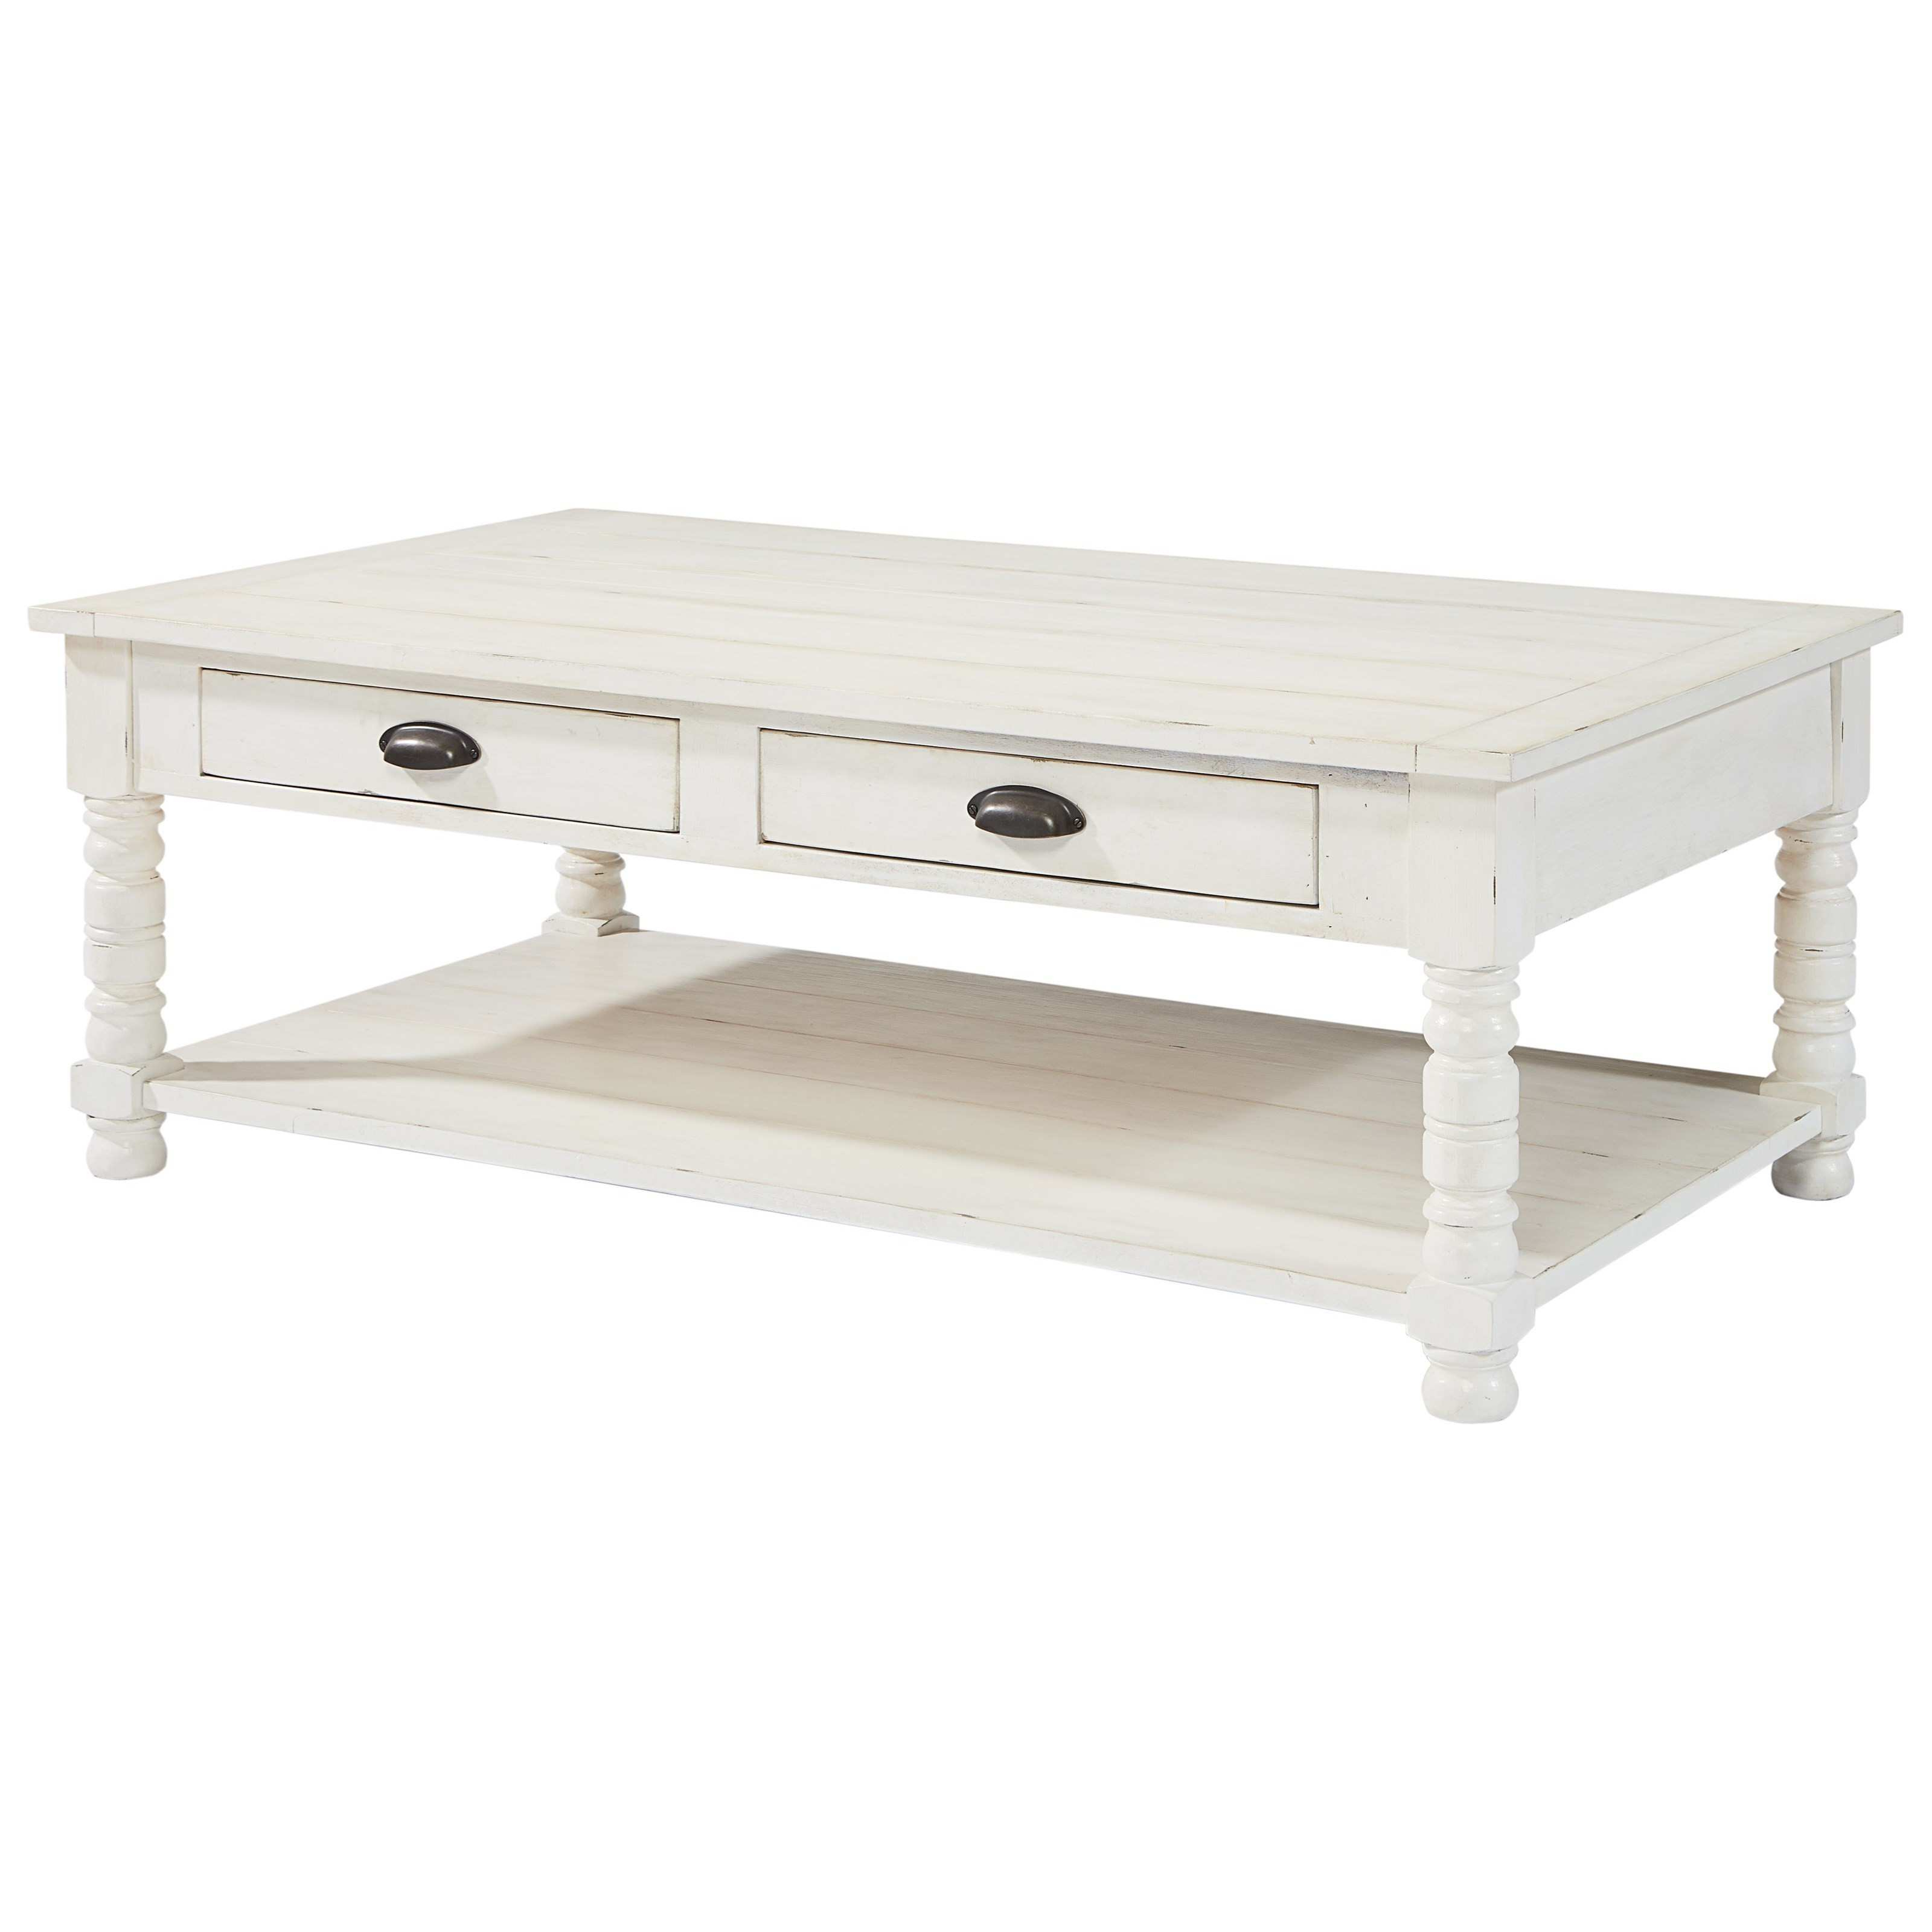 Amazing Magnolia Home Coffee Table For Magnolia Home Farmhouse Within Well Known Magnolia Home Ellipse Cocktail Tables By Joanna Gaines (Gallery 17 of 20)